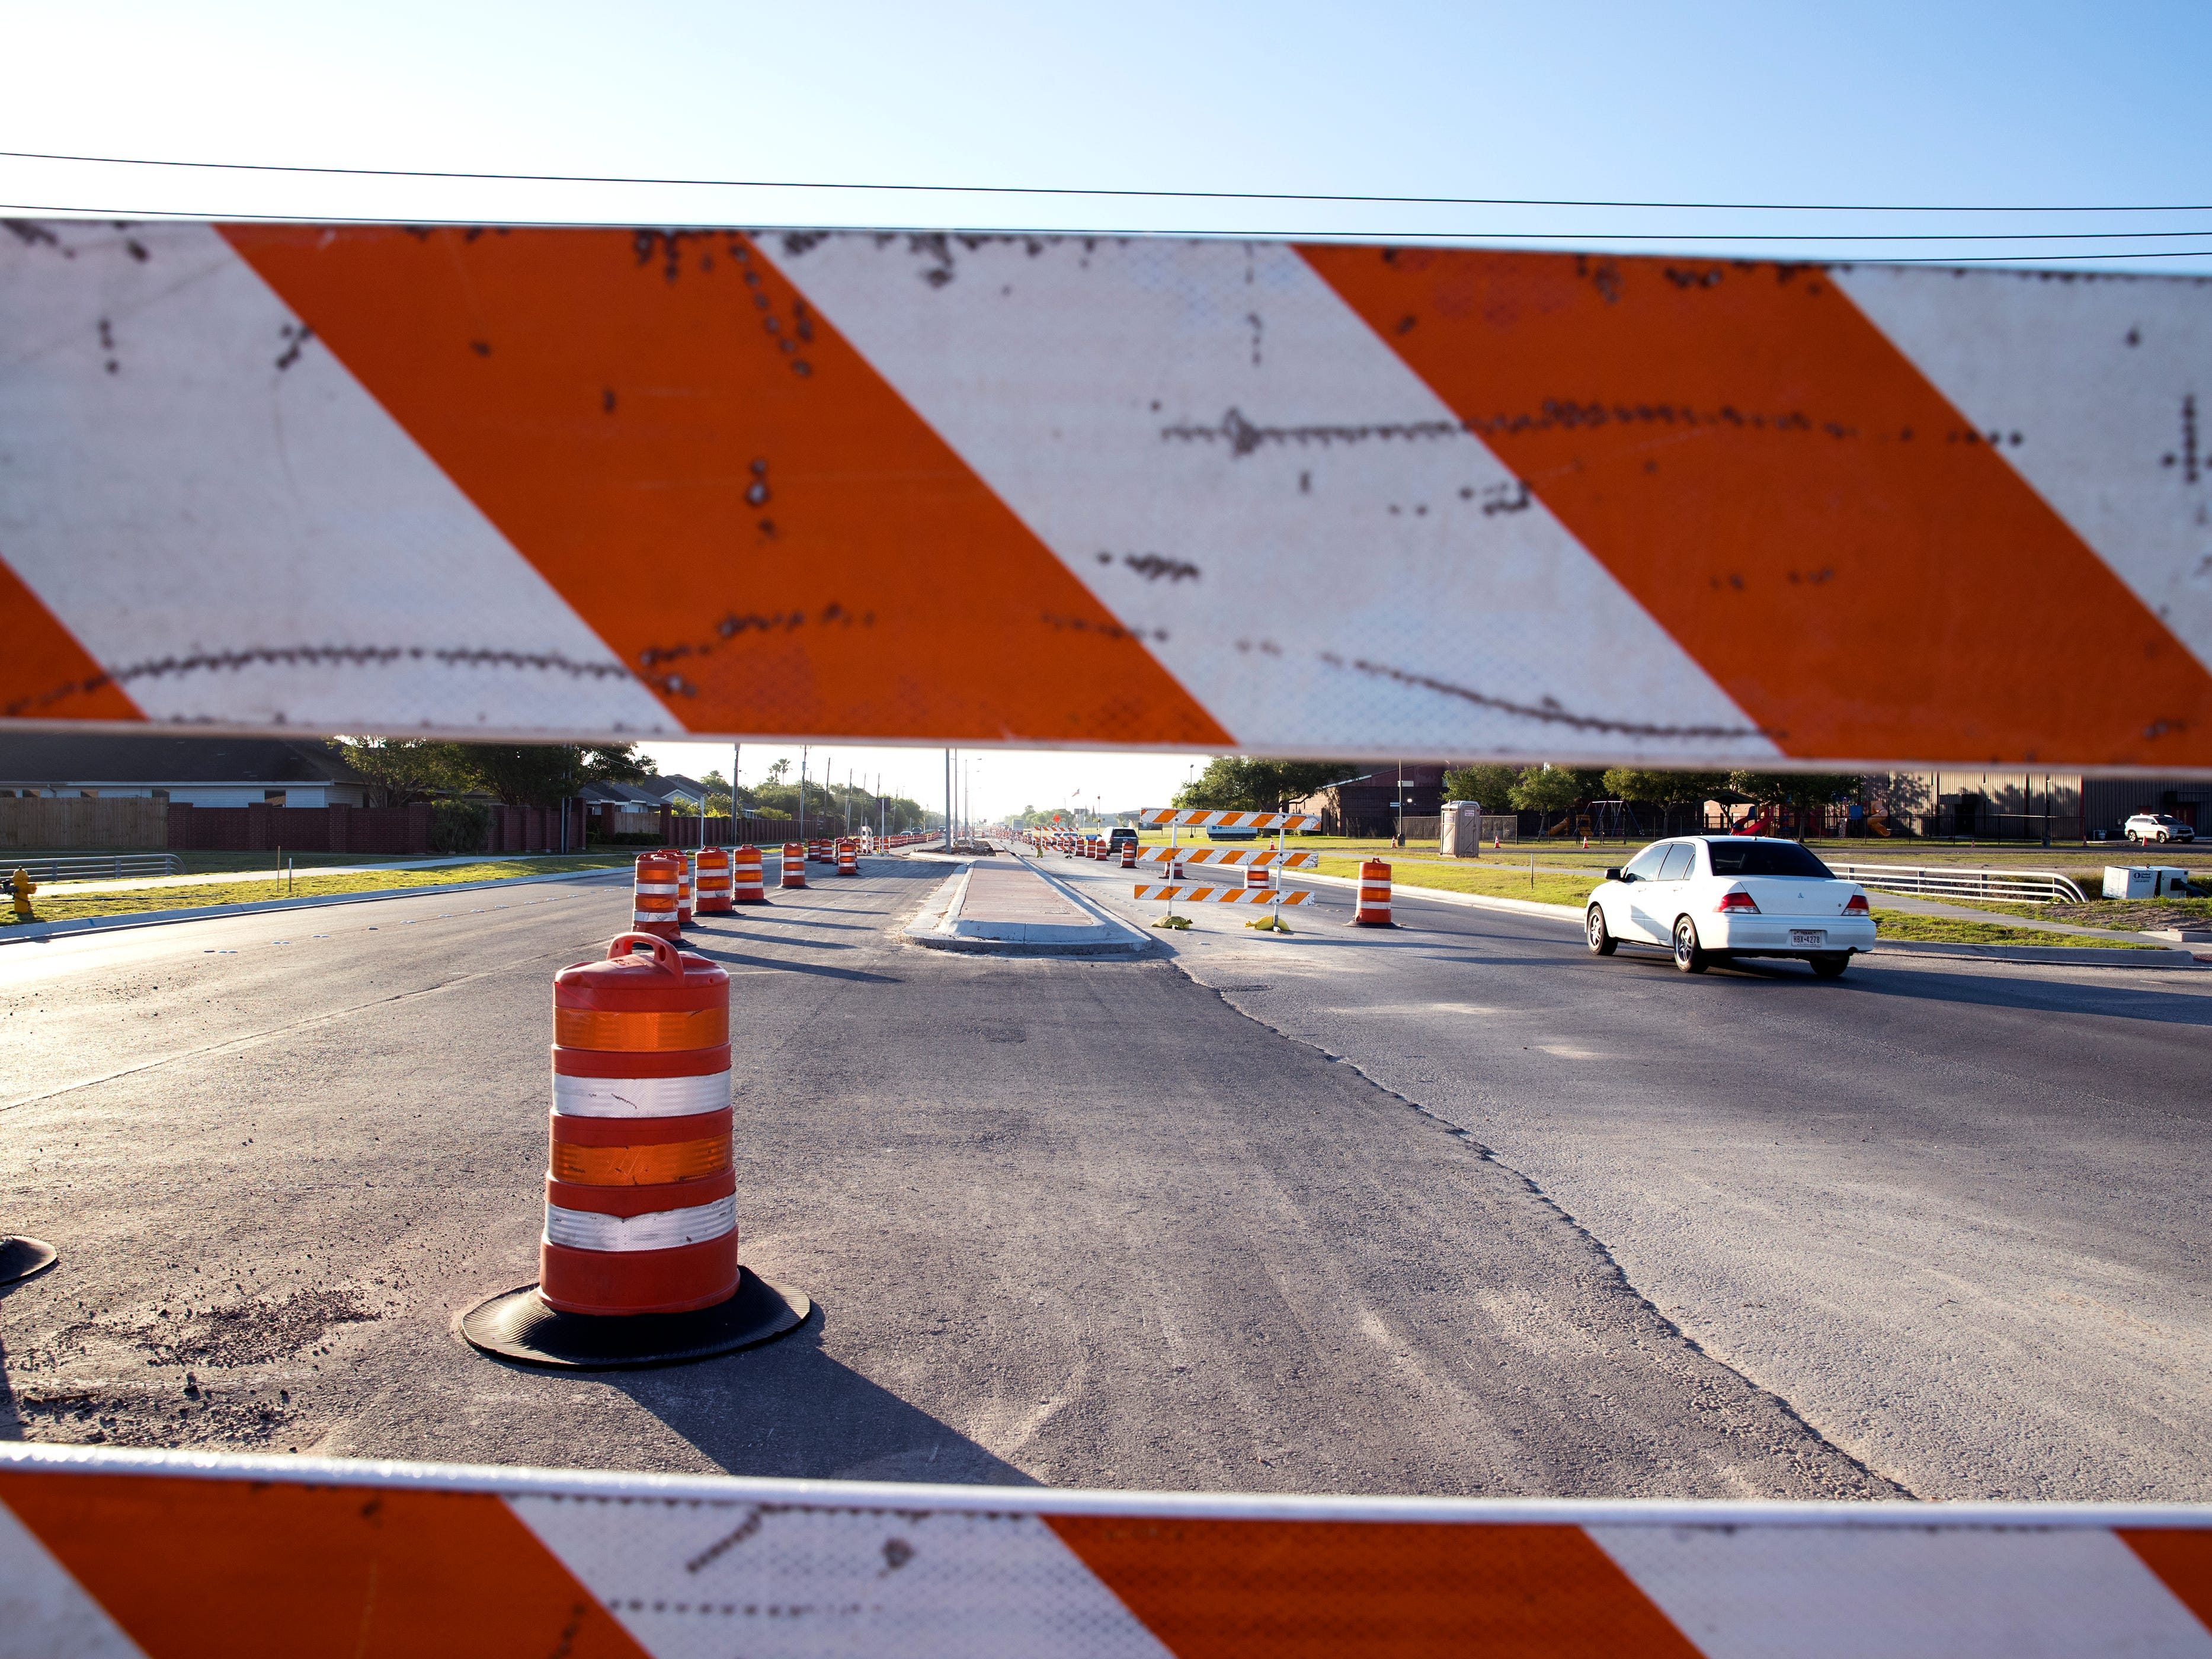 Construction on the Yorktown Bond 2014 project continues on April 10, 2019. The project is scheduled to be complete by the end of April after nearly two years  of work. The original completion date was set for October 2018.